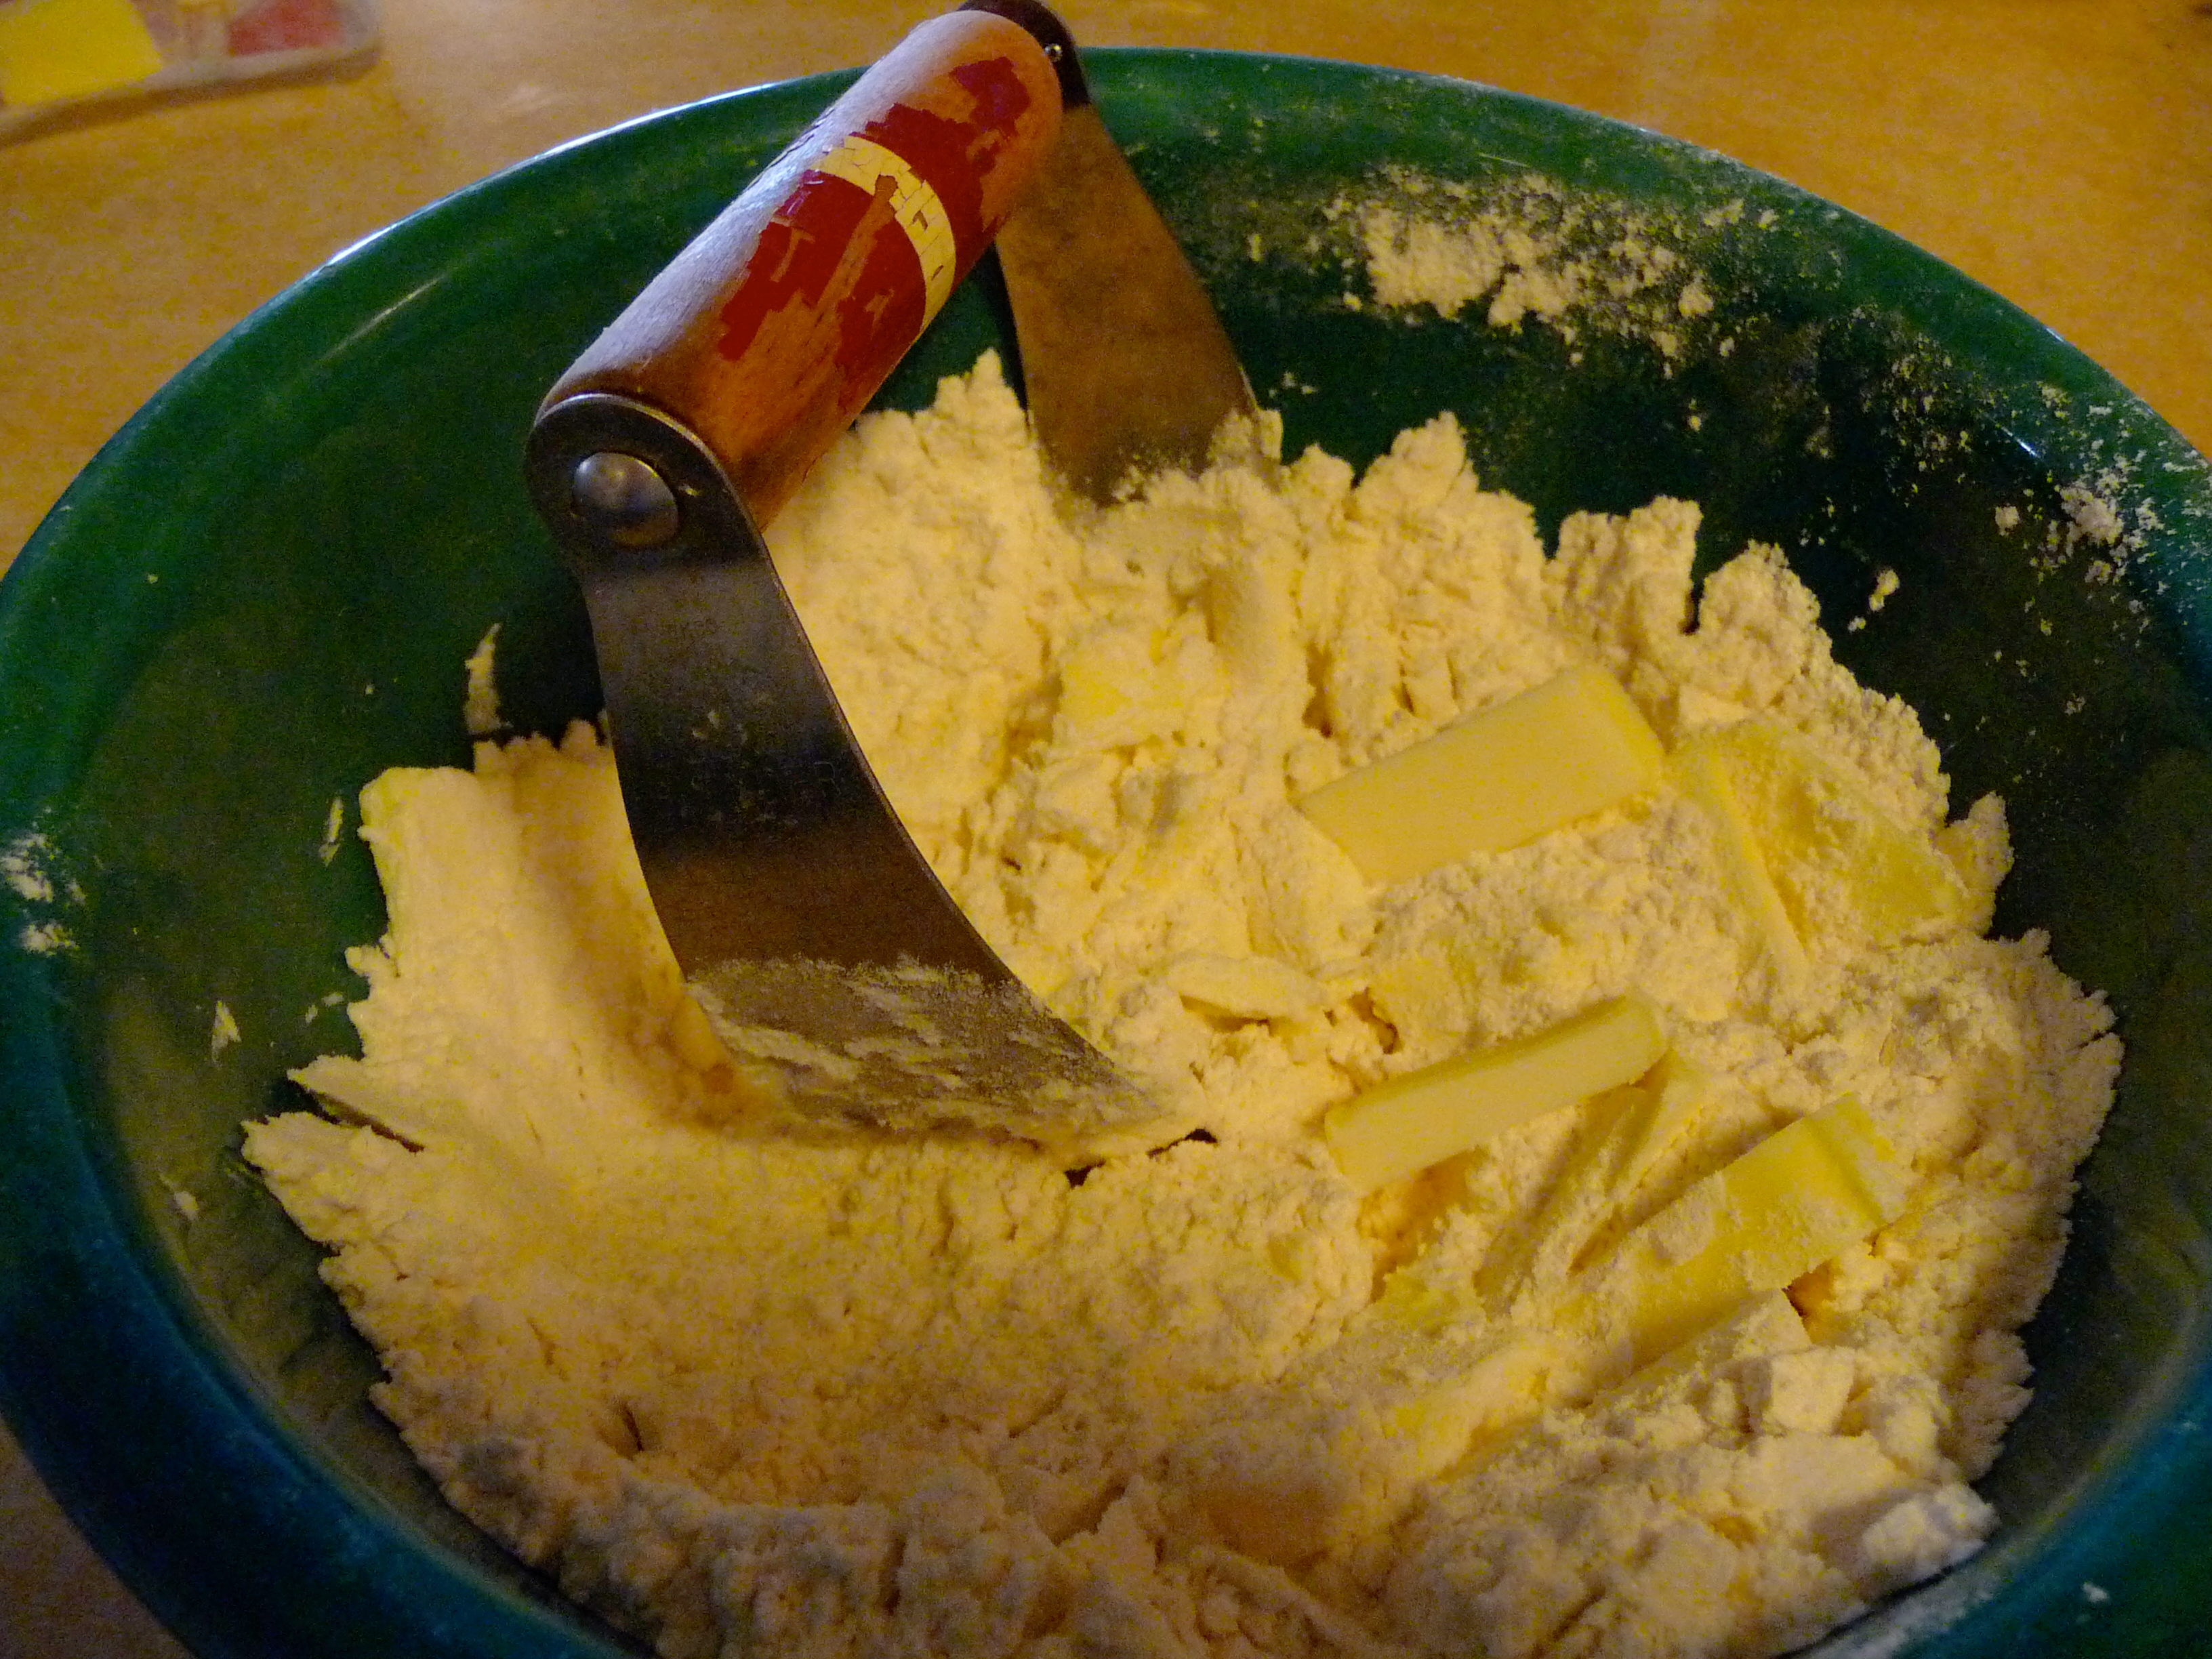 You can use a pastry cutter or your fingers to cut the butter into the flour